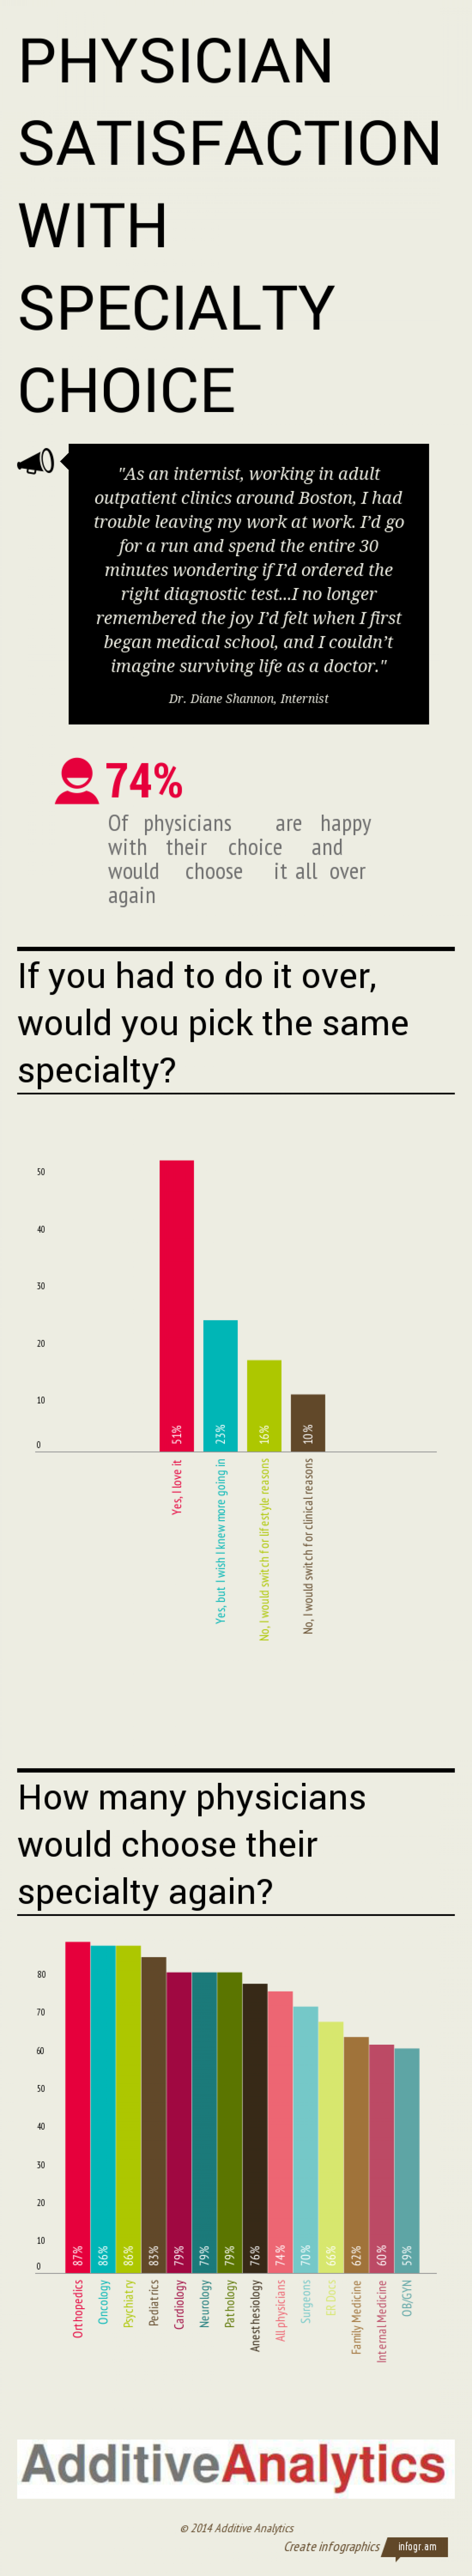 Physician Satisfaction With Specialty Choice Infographic